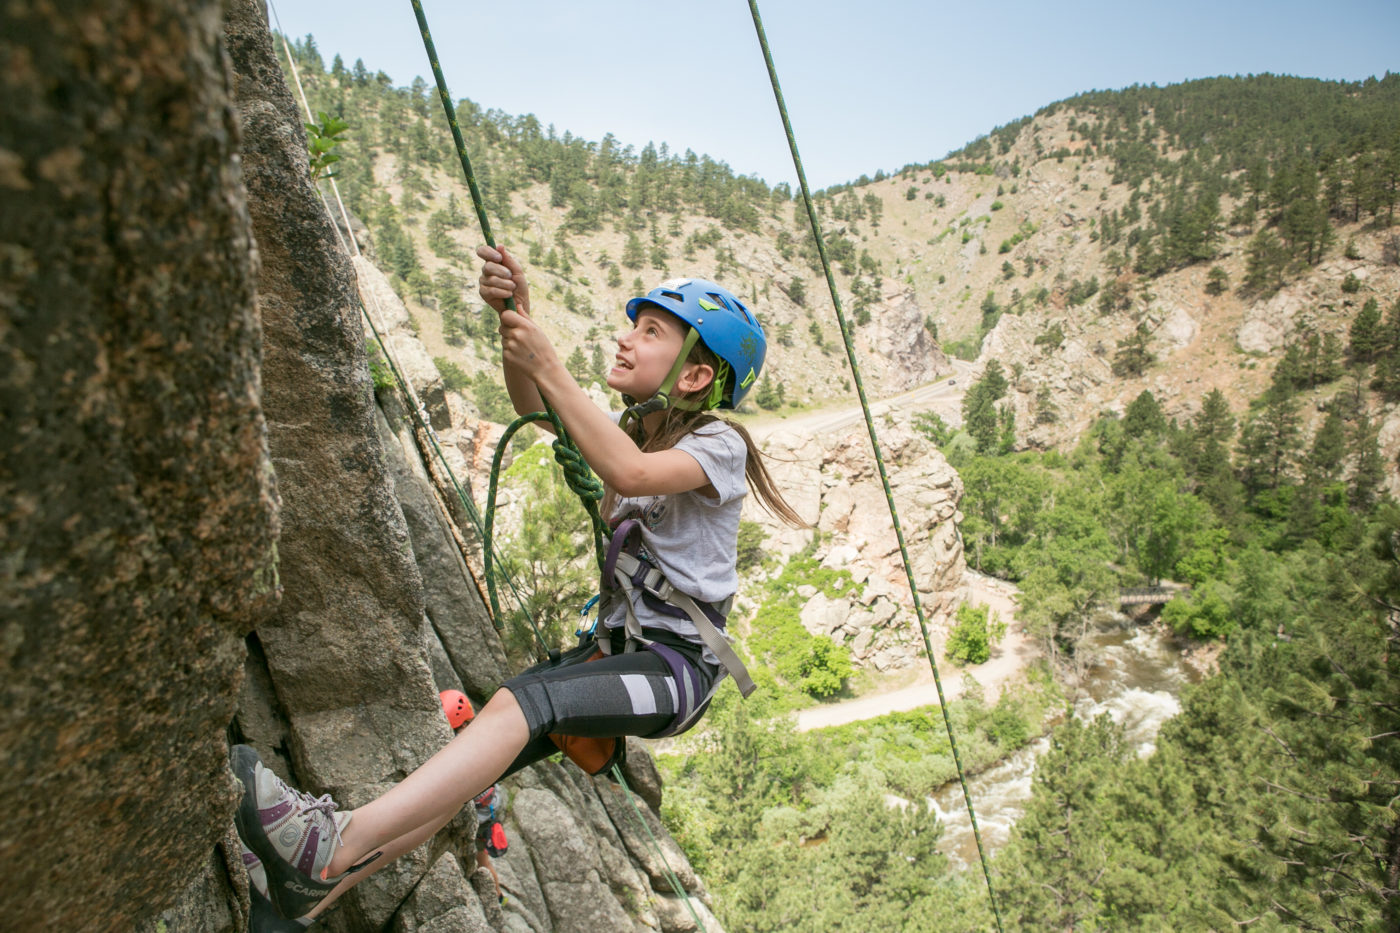 Kids rock climbing at summer camp